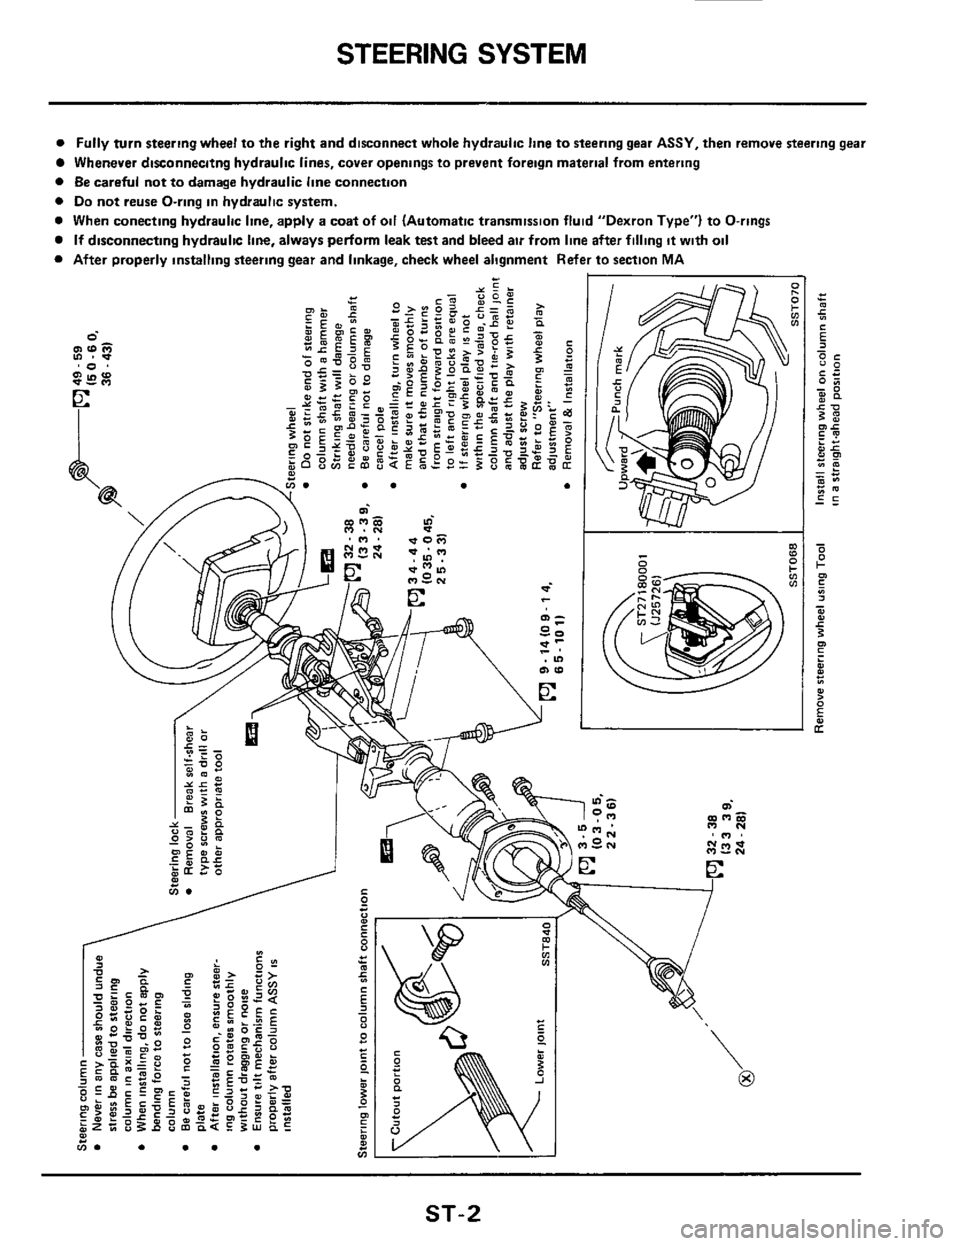 63 Willys Jeep Wiring Diagram. Jeep. Auto Wiring Diagram